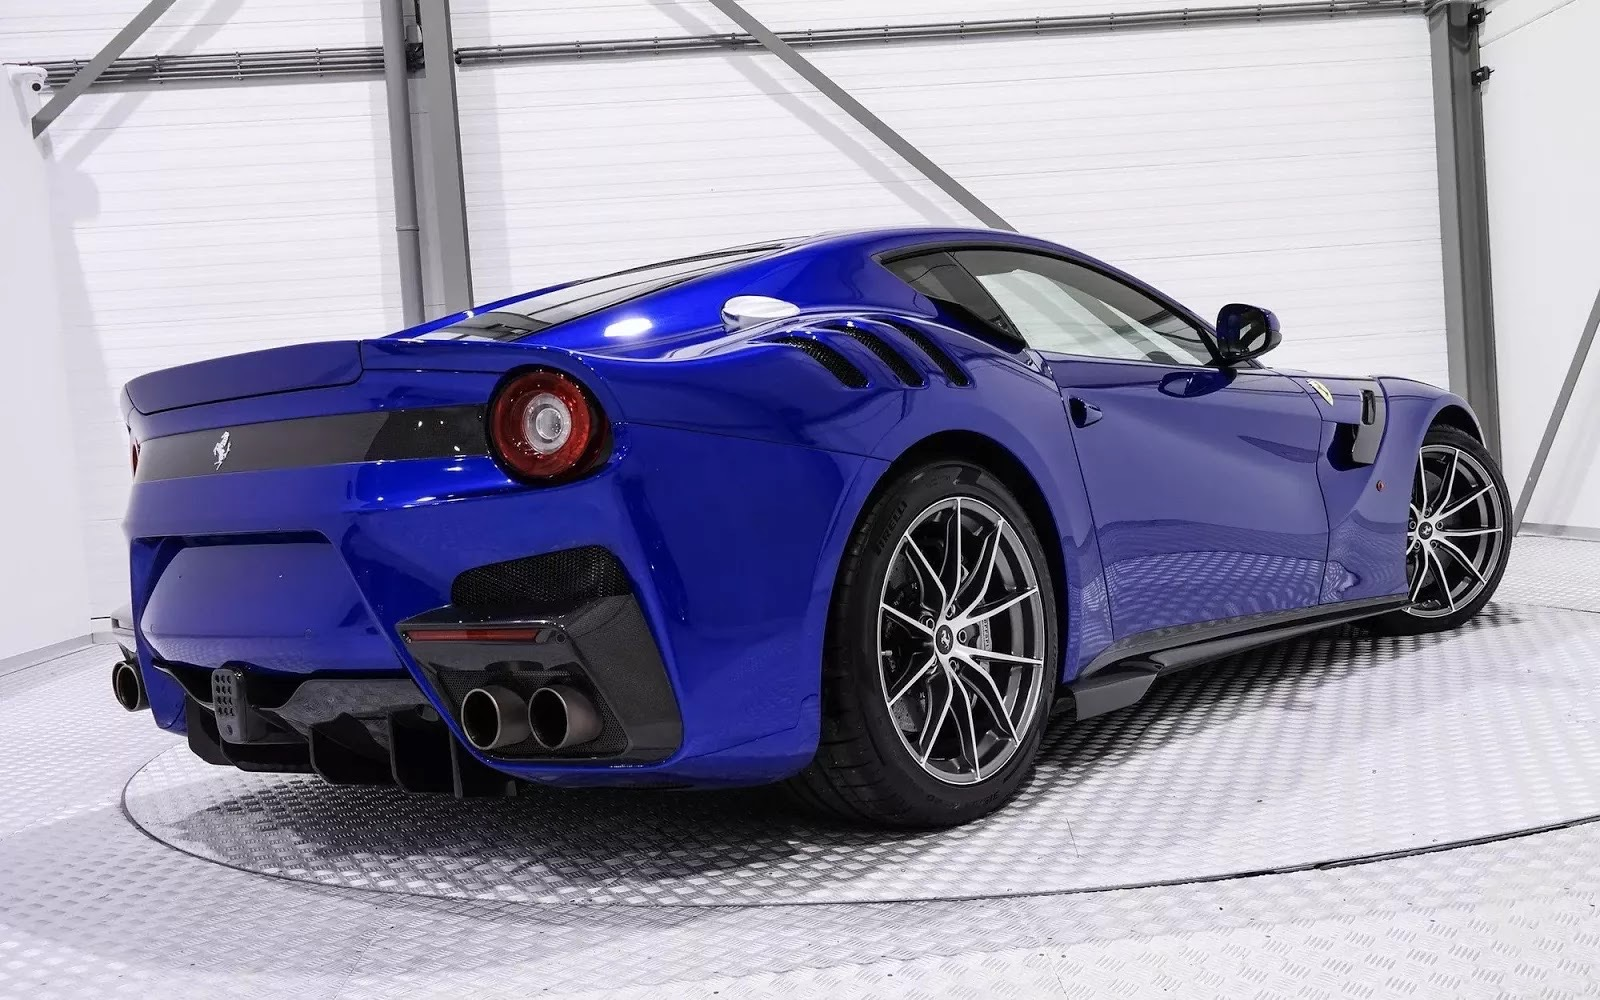 One-Off_Electric_Blue_Ferrari_F12tdf_07